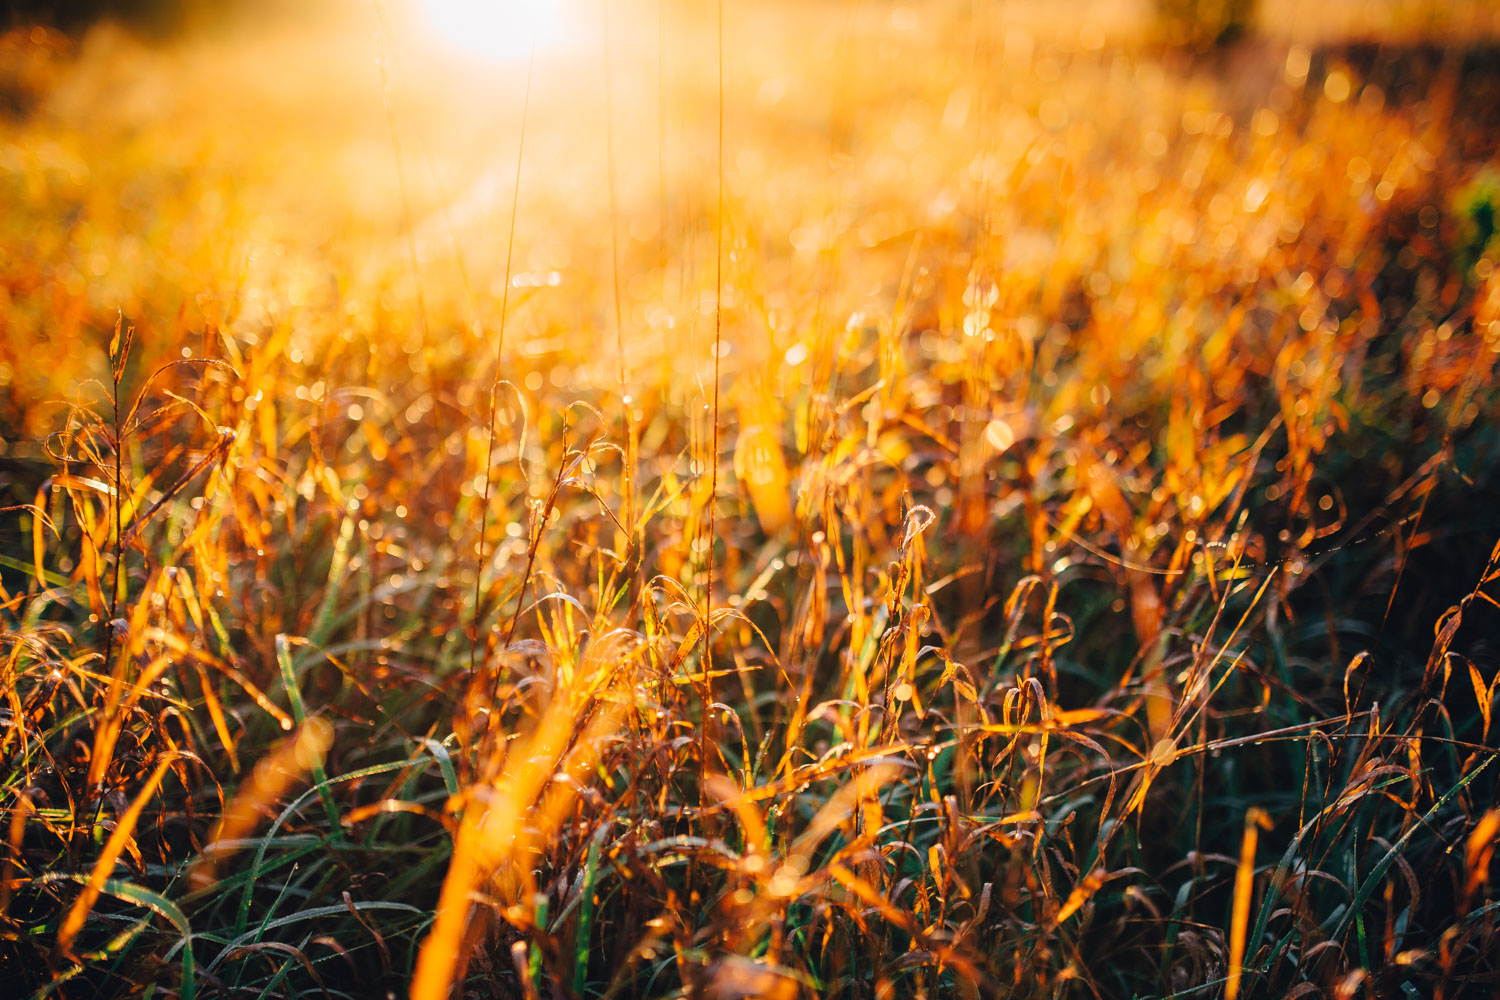 The sun's vibrant rays transformed the field into a golden and lush meadow.